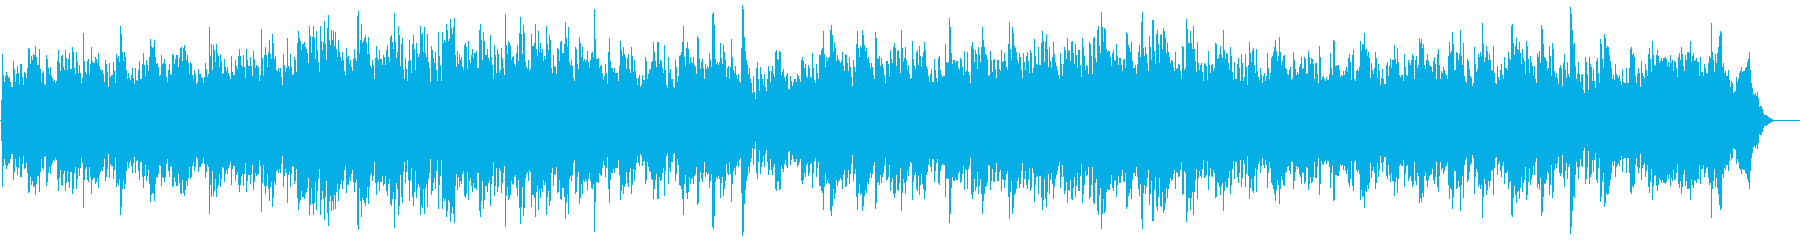 Hey, Detective. I actually saw the crime last night. My husband was...'s reproduced waveform